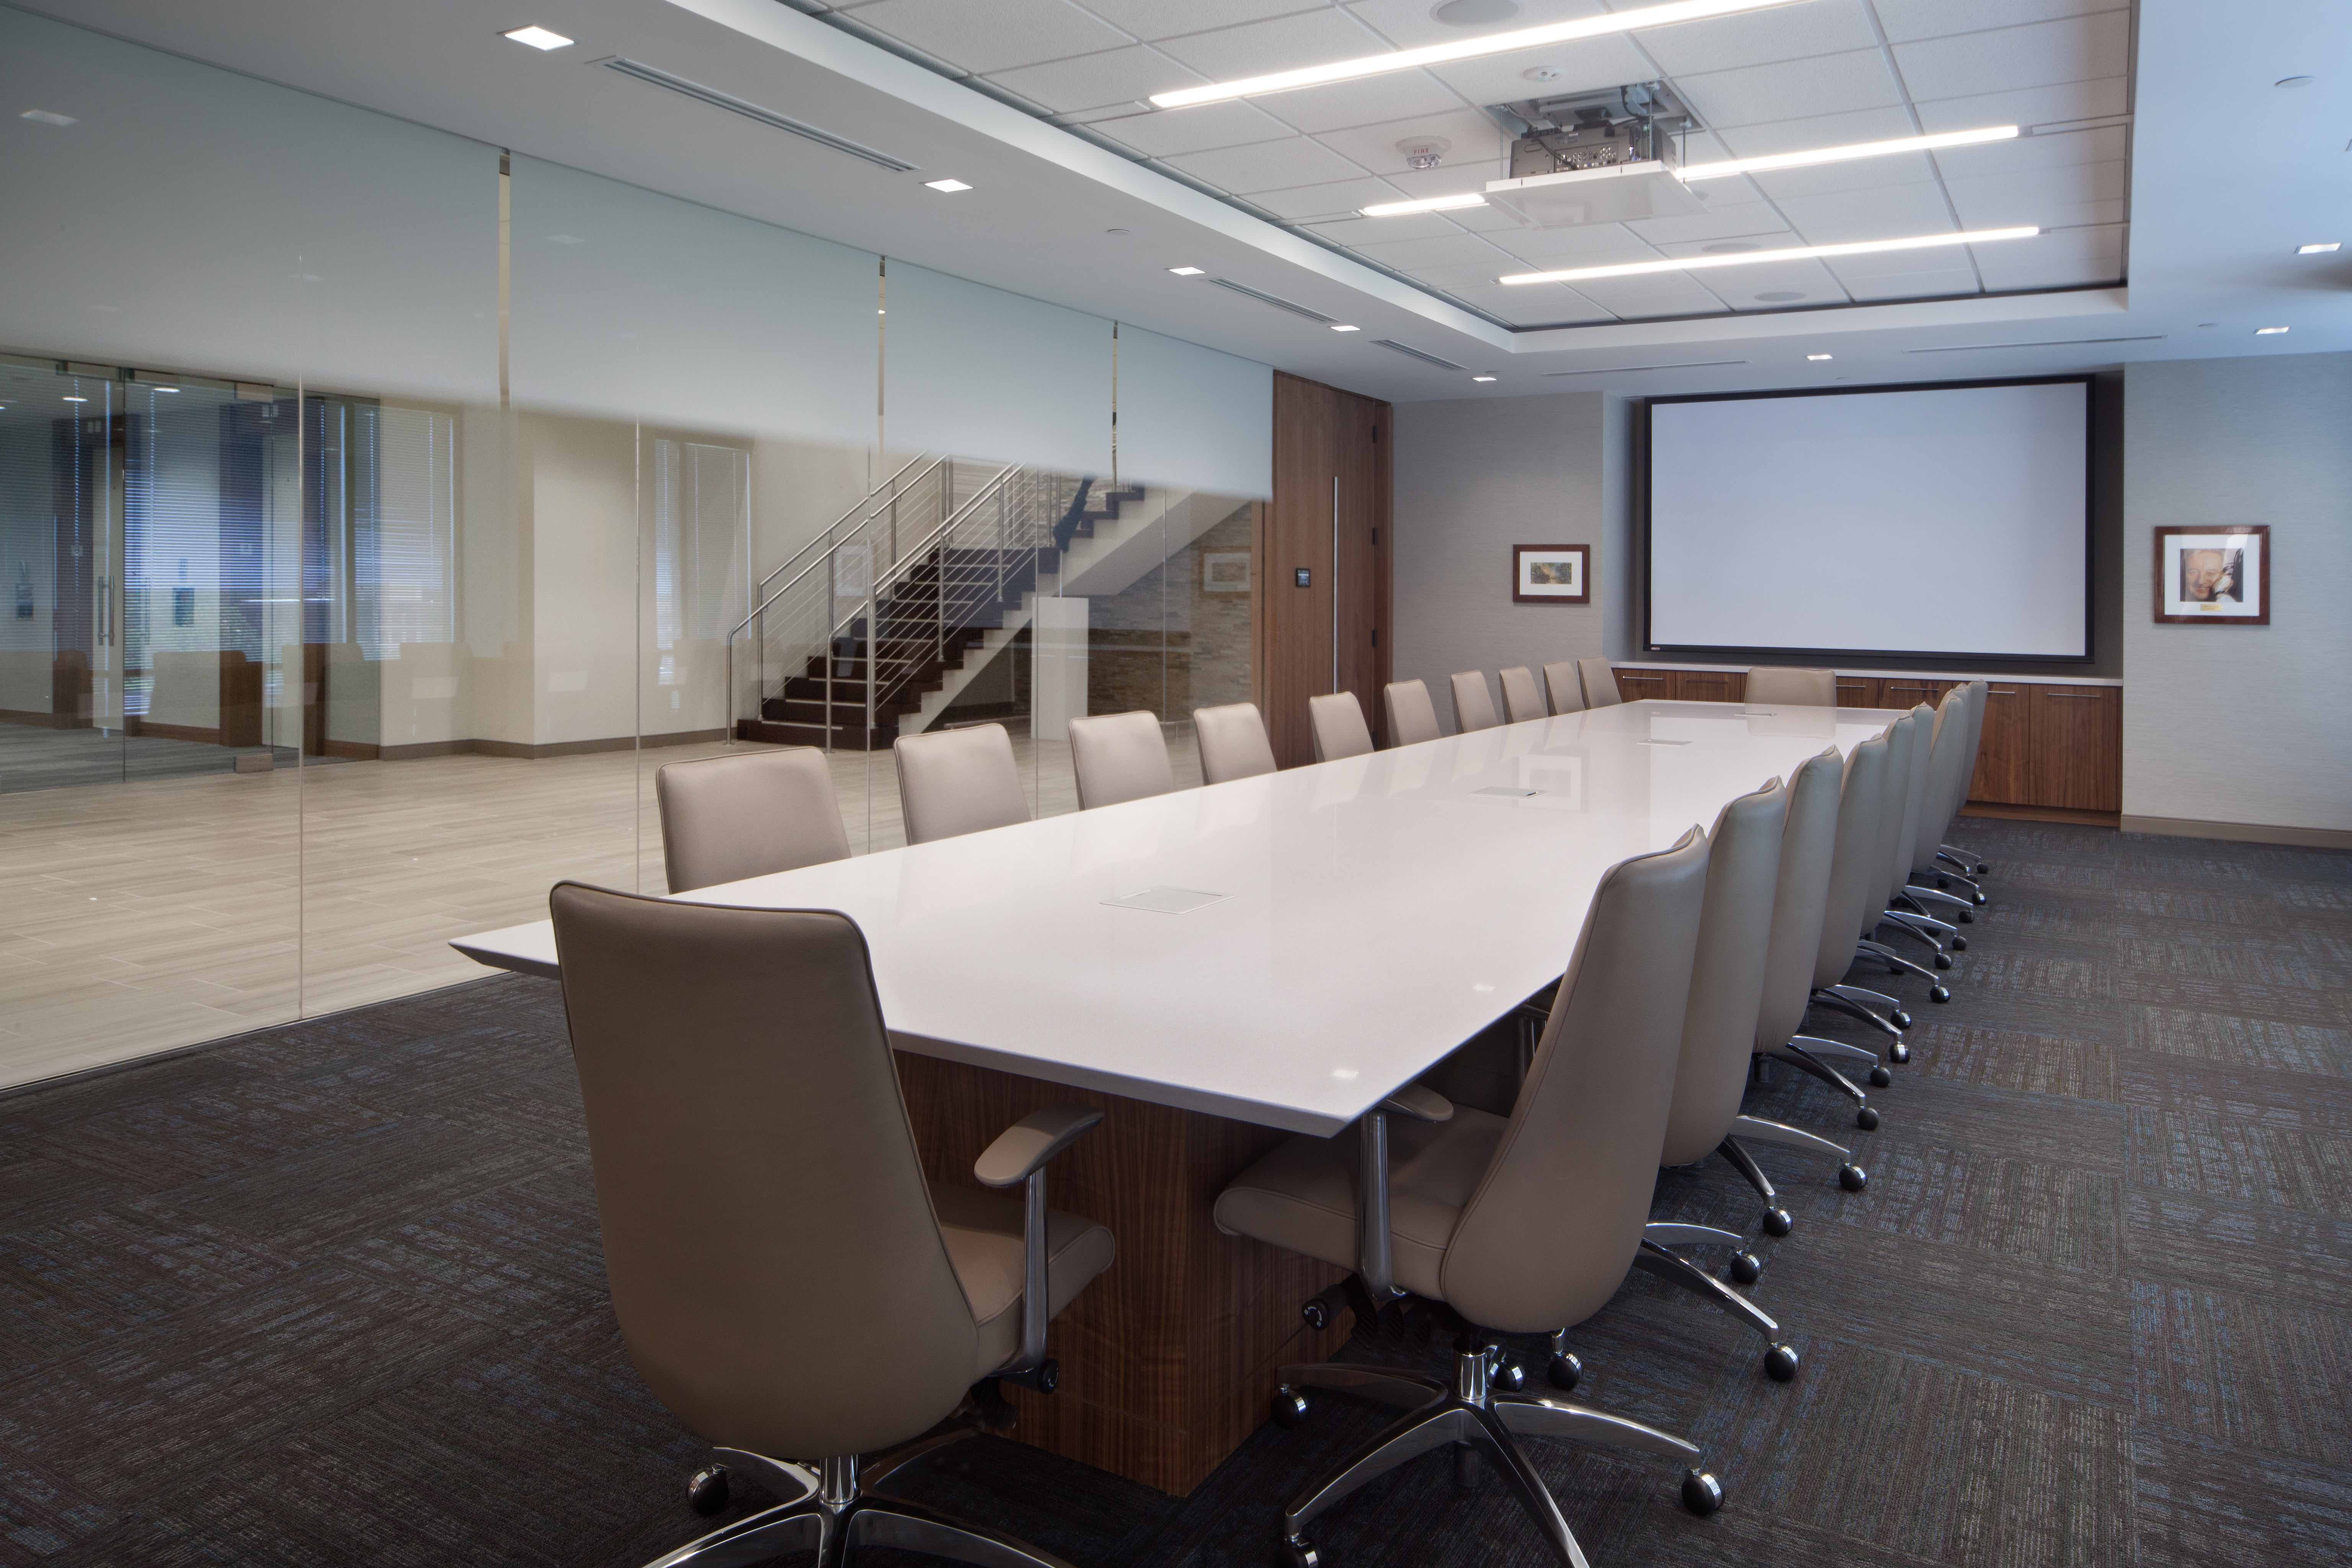 Commercial Audio, Video Lighting Solutions, video conference, wireless presentation, meeting room technology, lighting control, Lutron, Crestron, Sonos